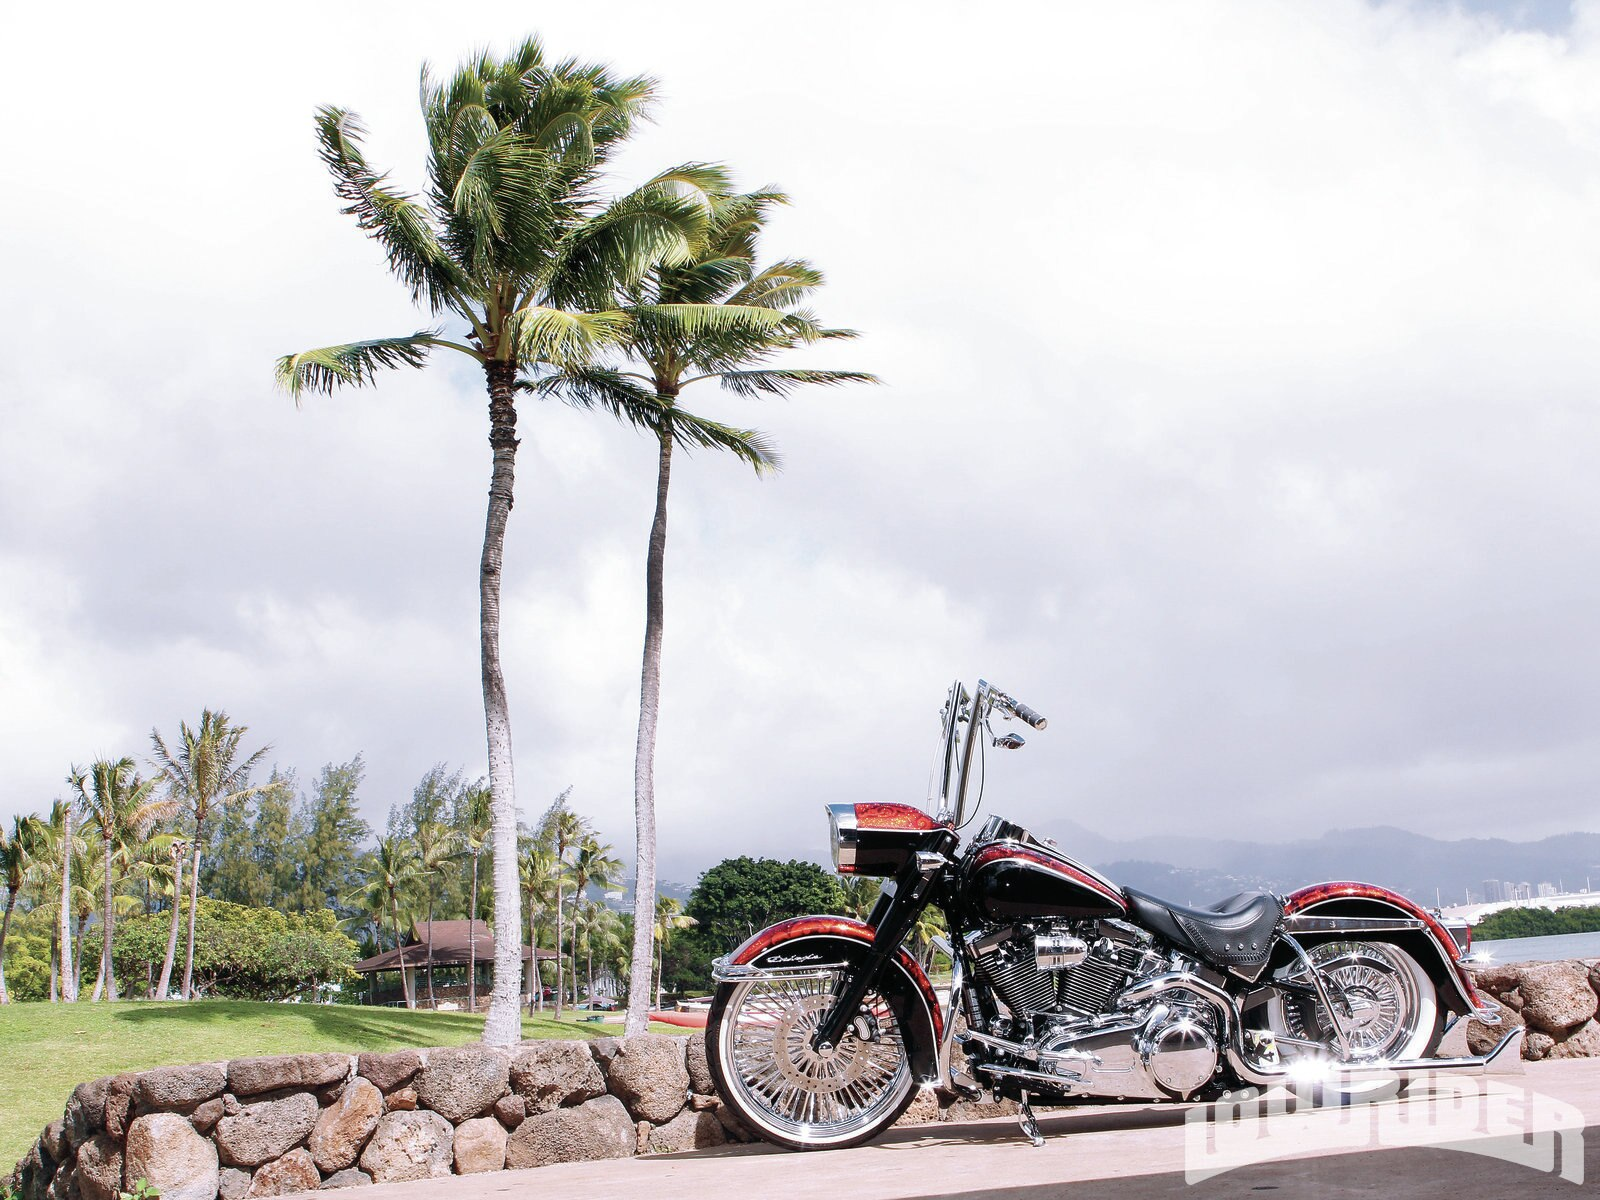 2007-harley-davidson-deluxe-left-side-view2